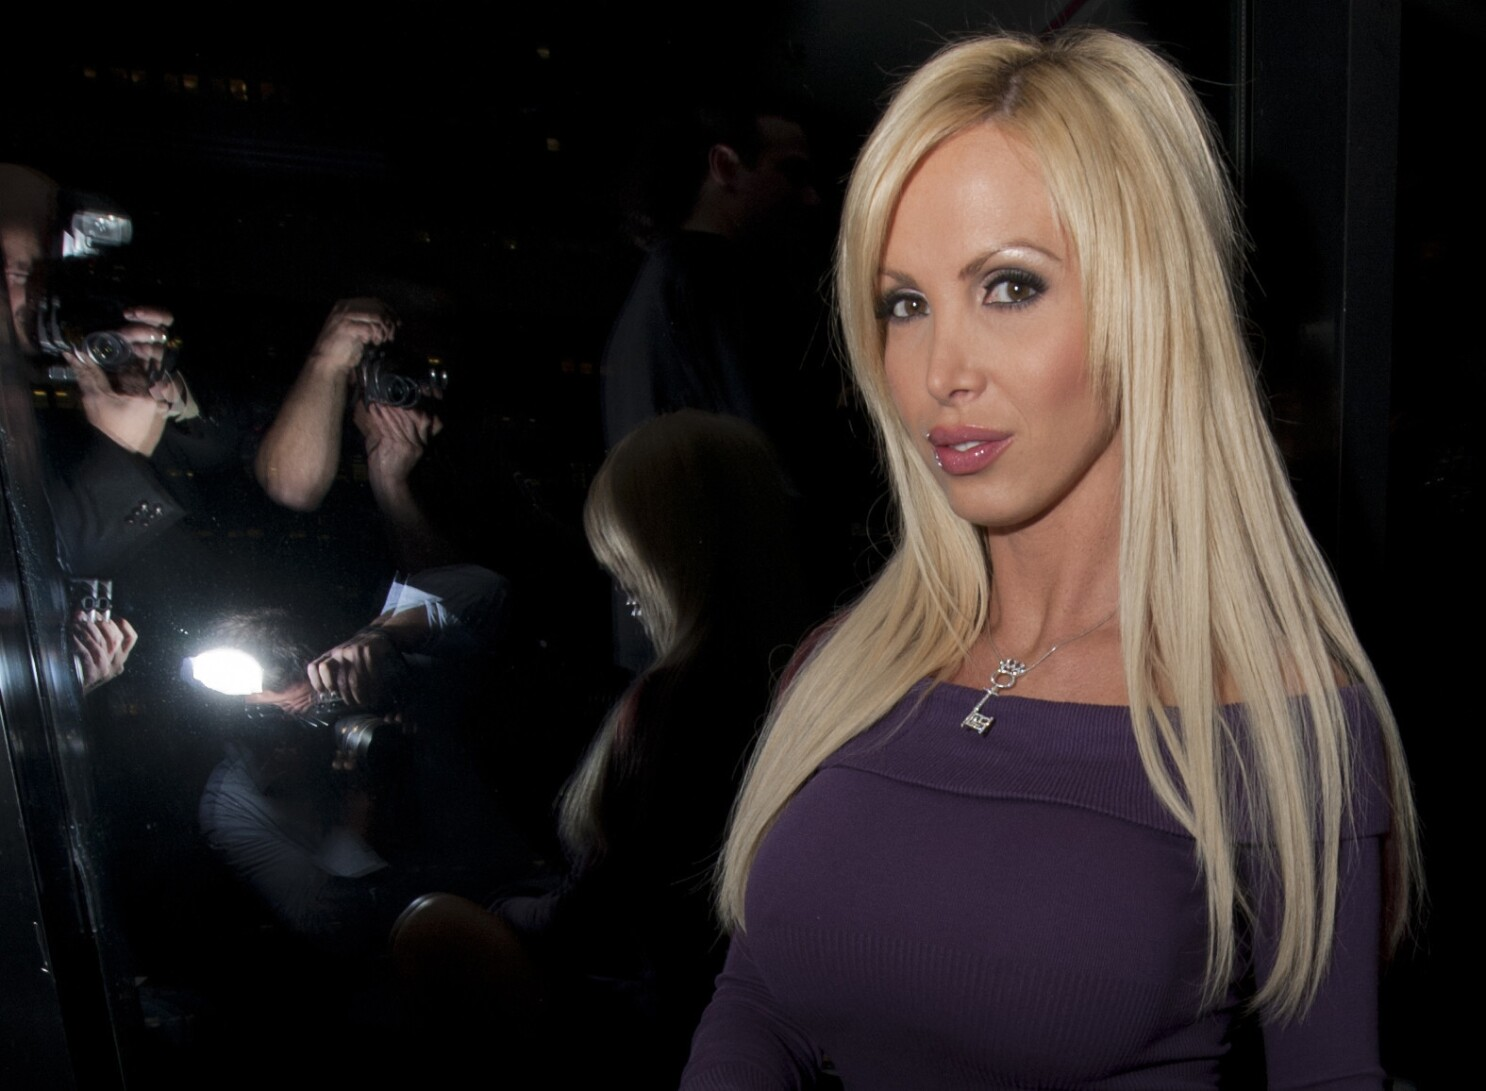 actresses who worked in porn